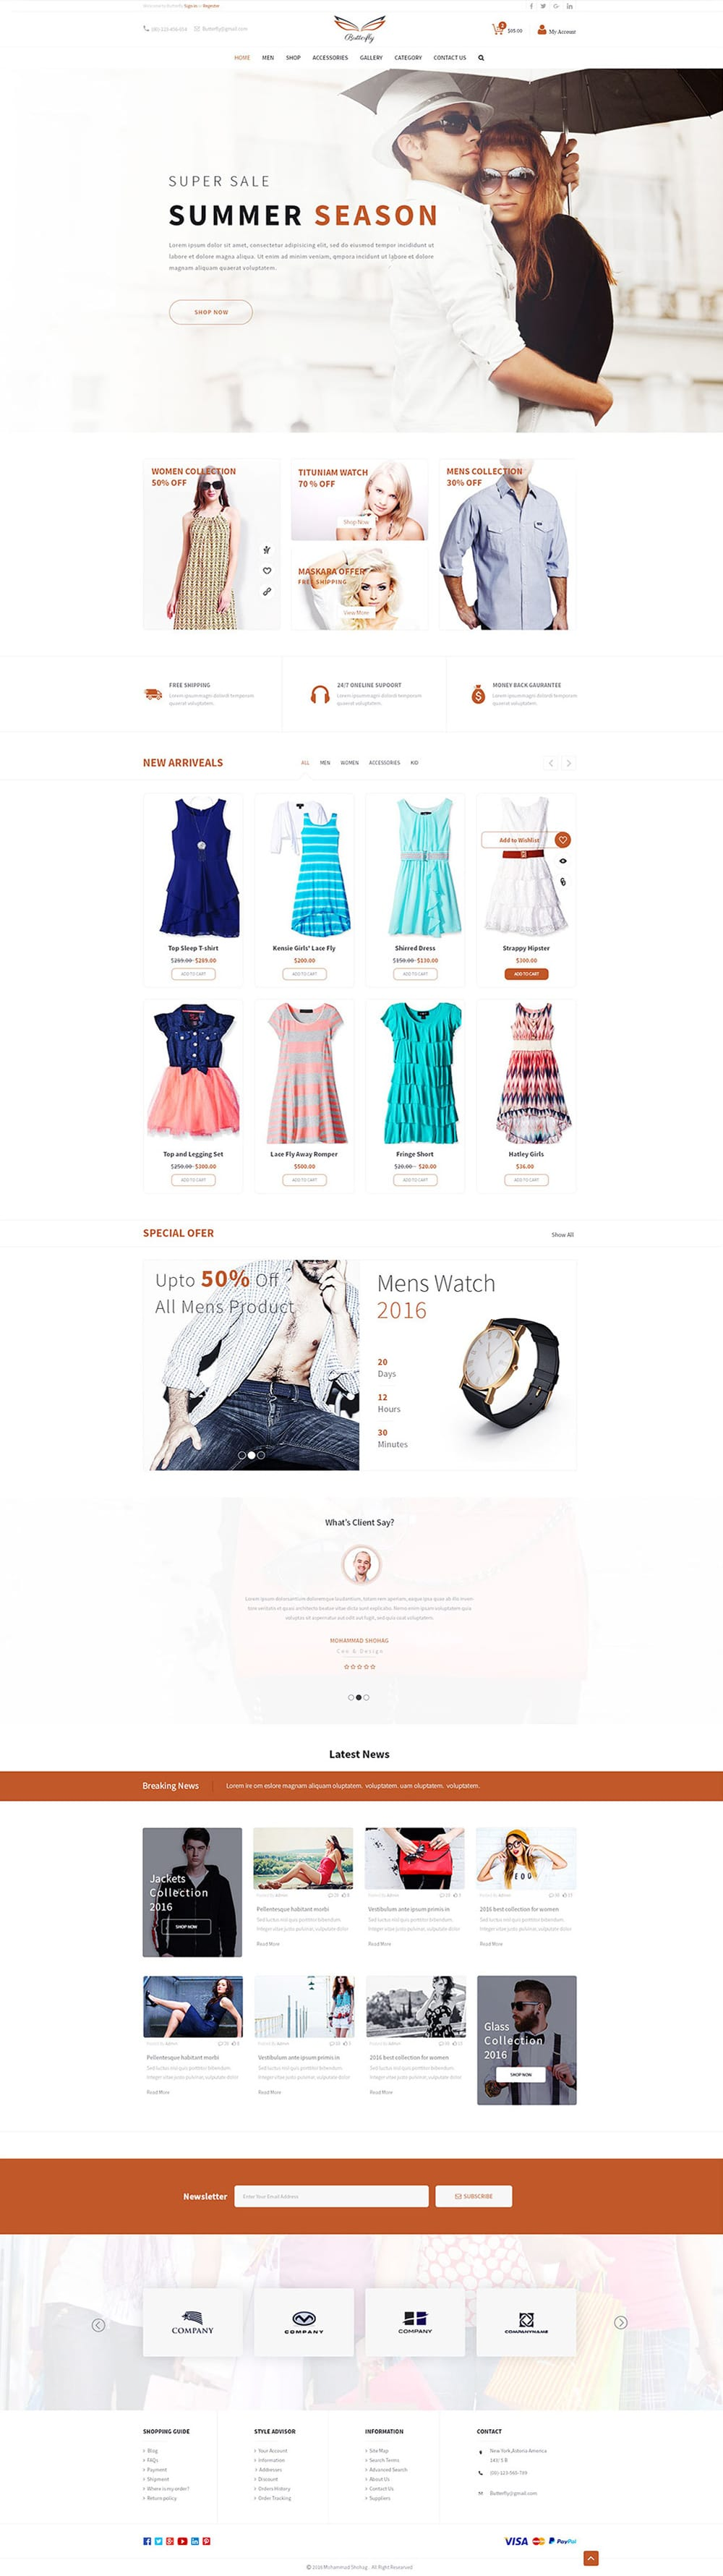 Free Fashion E commerce Template PSD